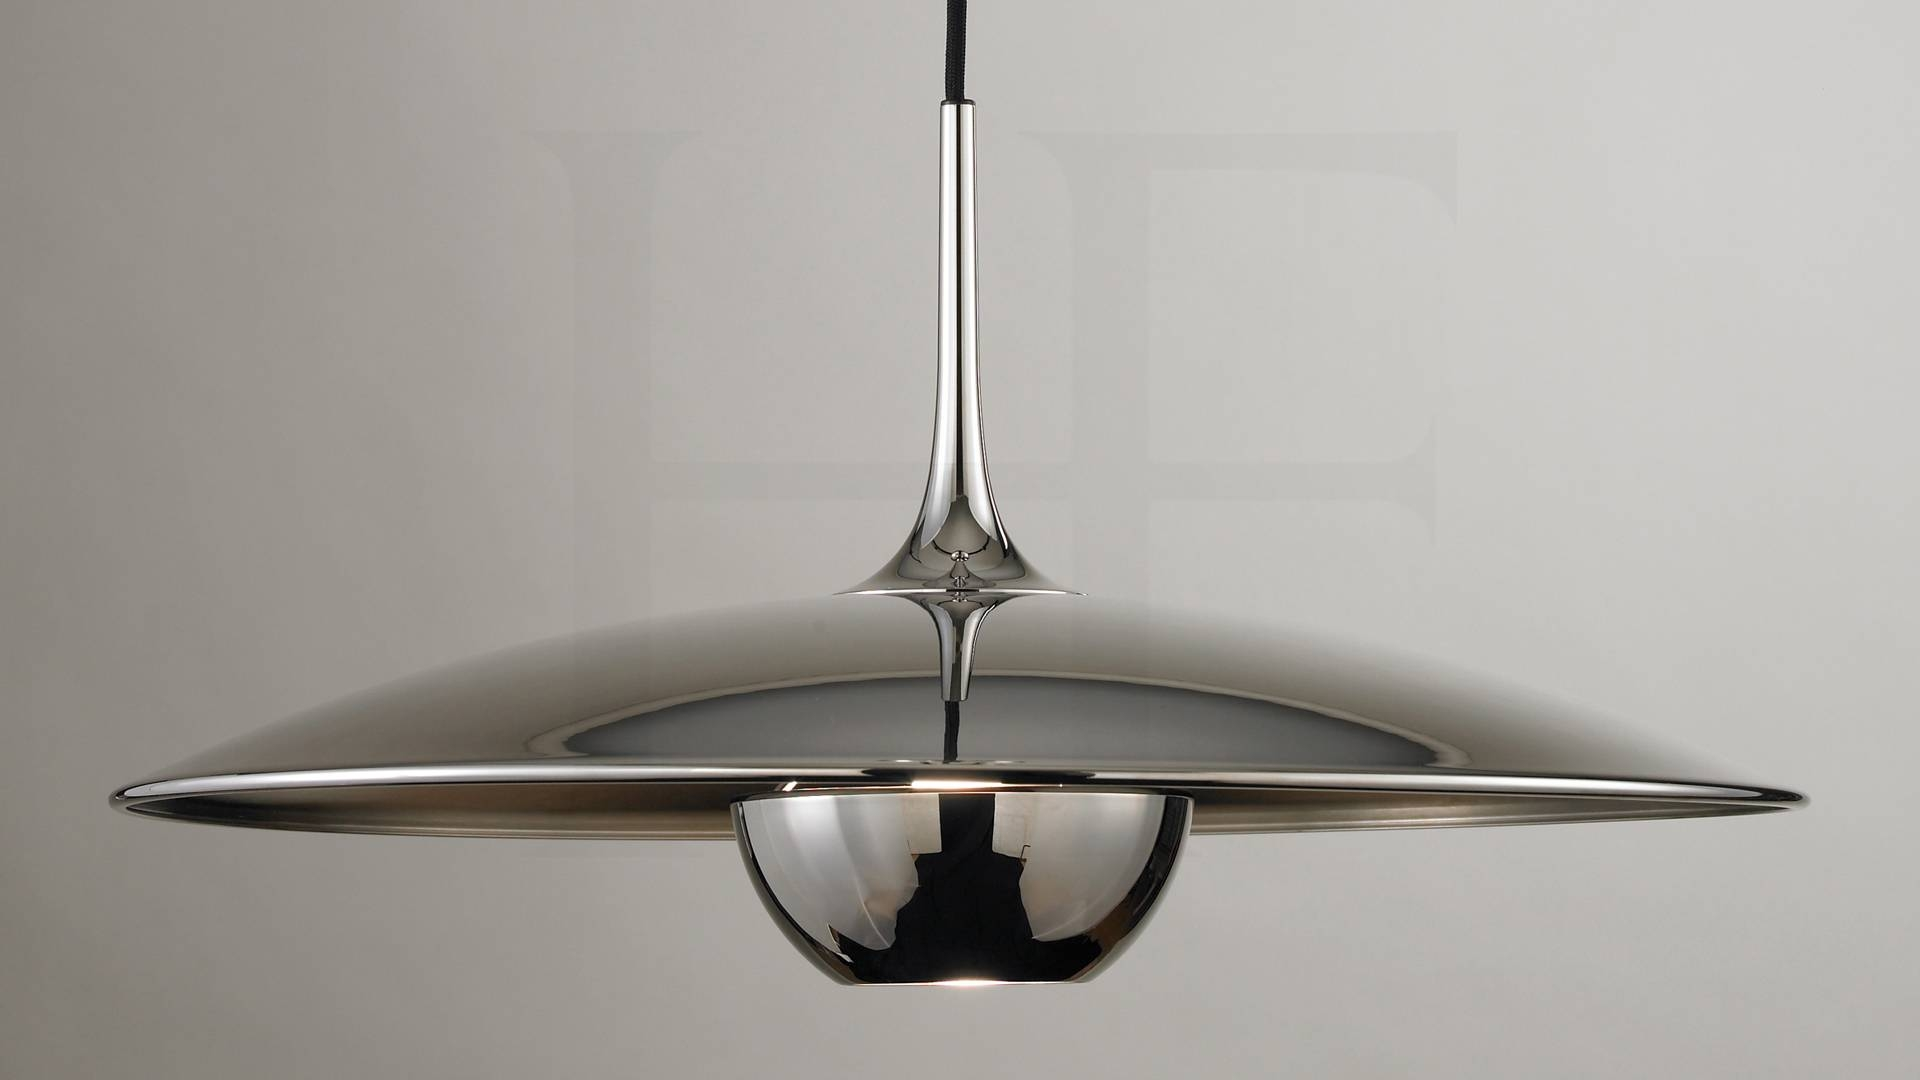 Buy Chandeliers, Pendant Ceiling Lighting, Brass Pendant Lights within Rise and Fall Pendants (Image 1 of 15)